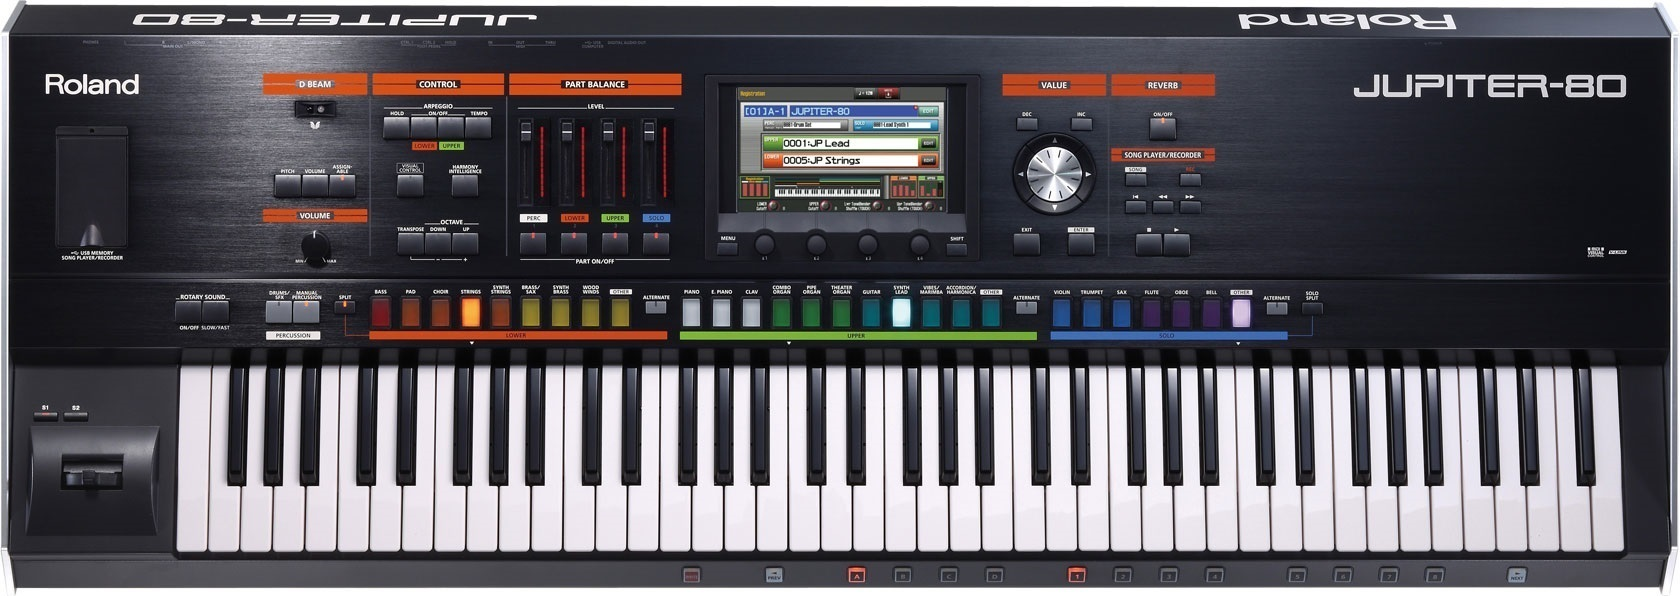 JUPITER-80 Version 2